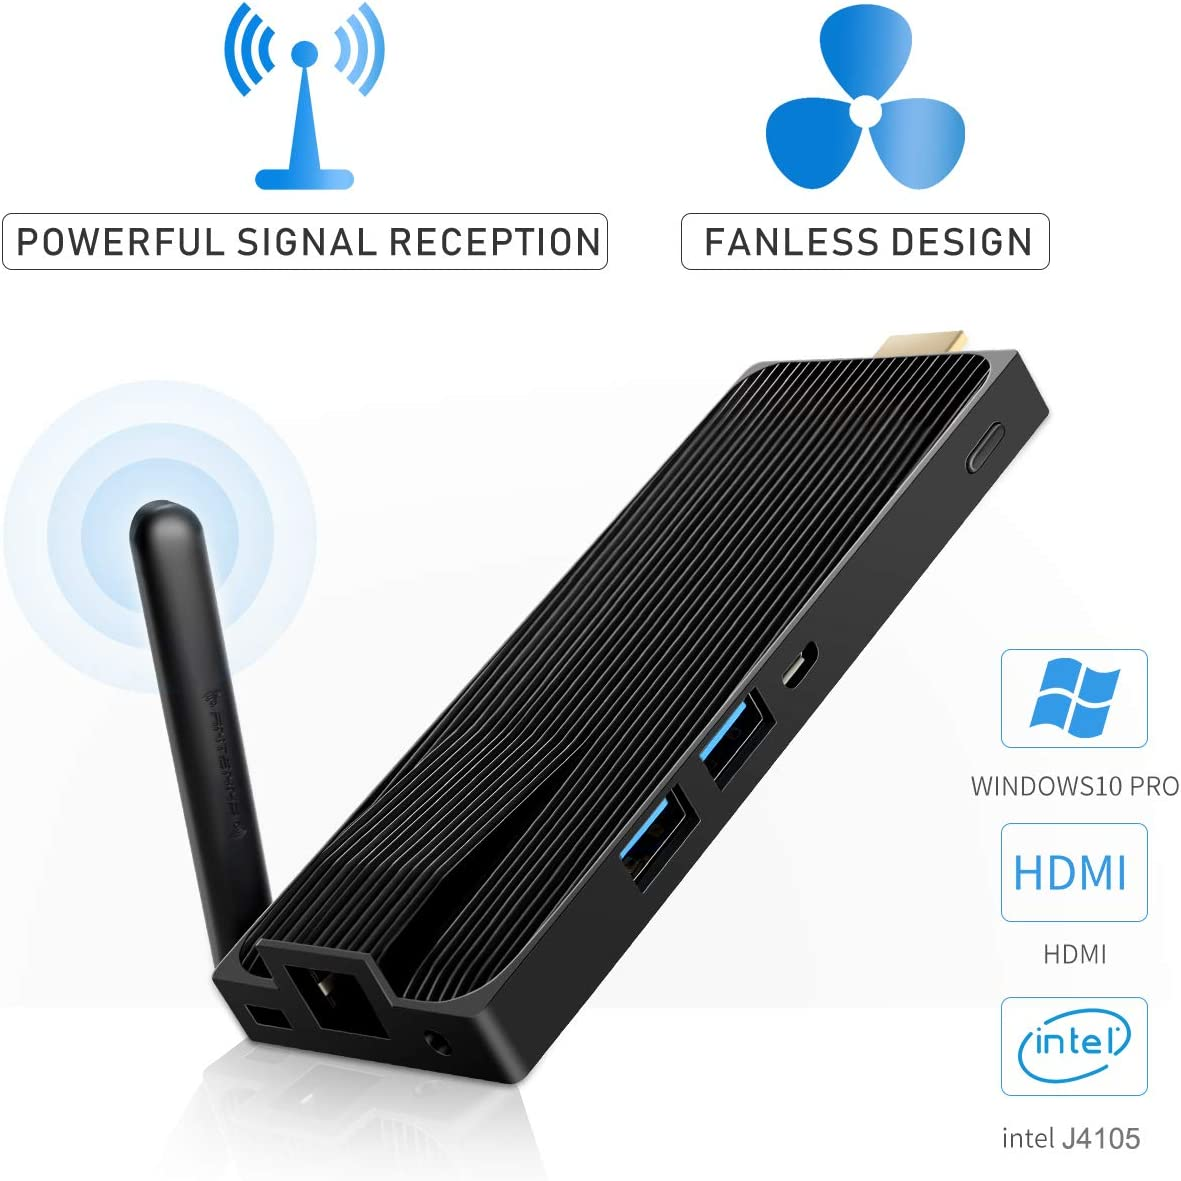 Mini PC MeLE PC Stick Windows 10 Pro Intel Celeron J4105 Fanless Mini PC 4GB 64GB eMMC Support 4K HD,2.4G/5G WiFi,Gigabit Ethernet,BT 4.2